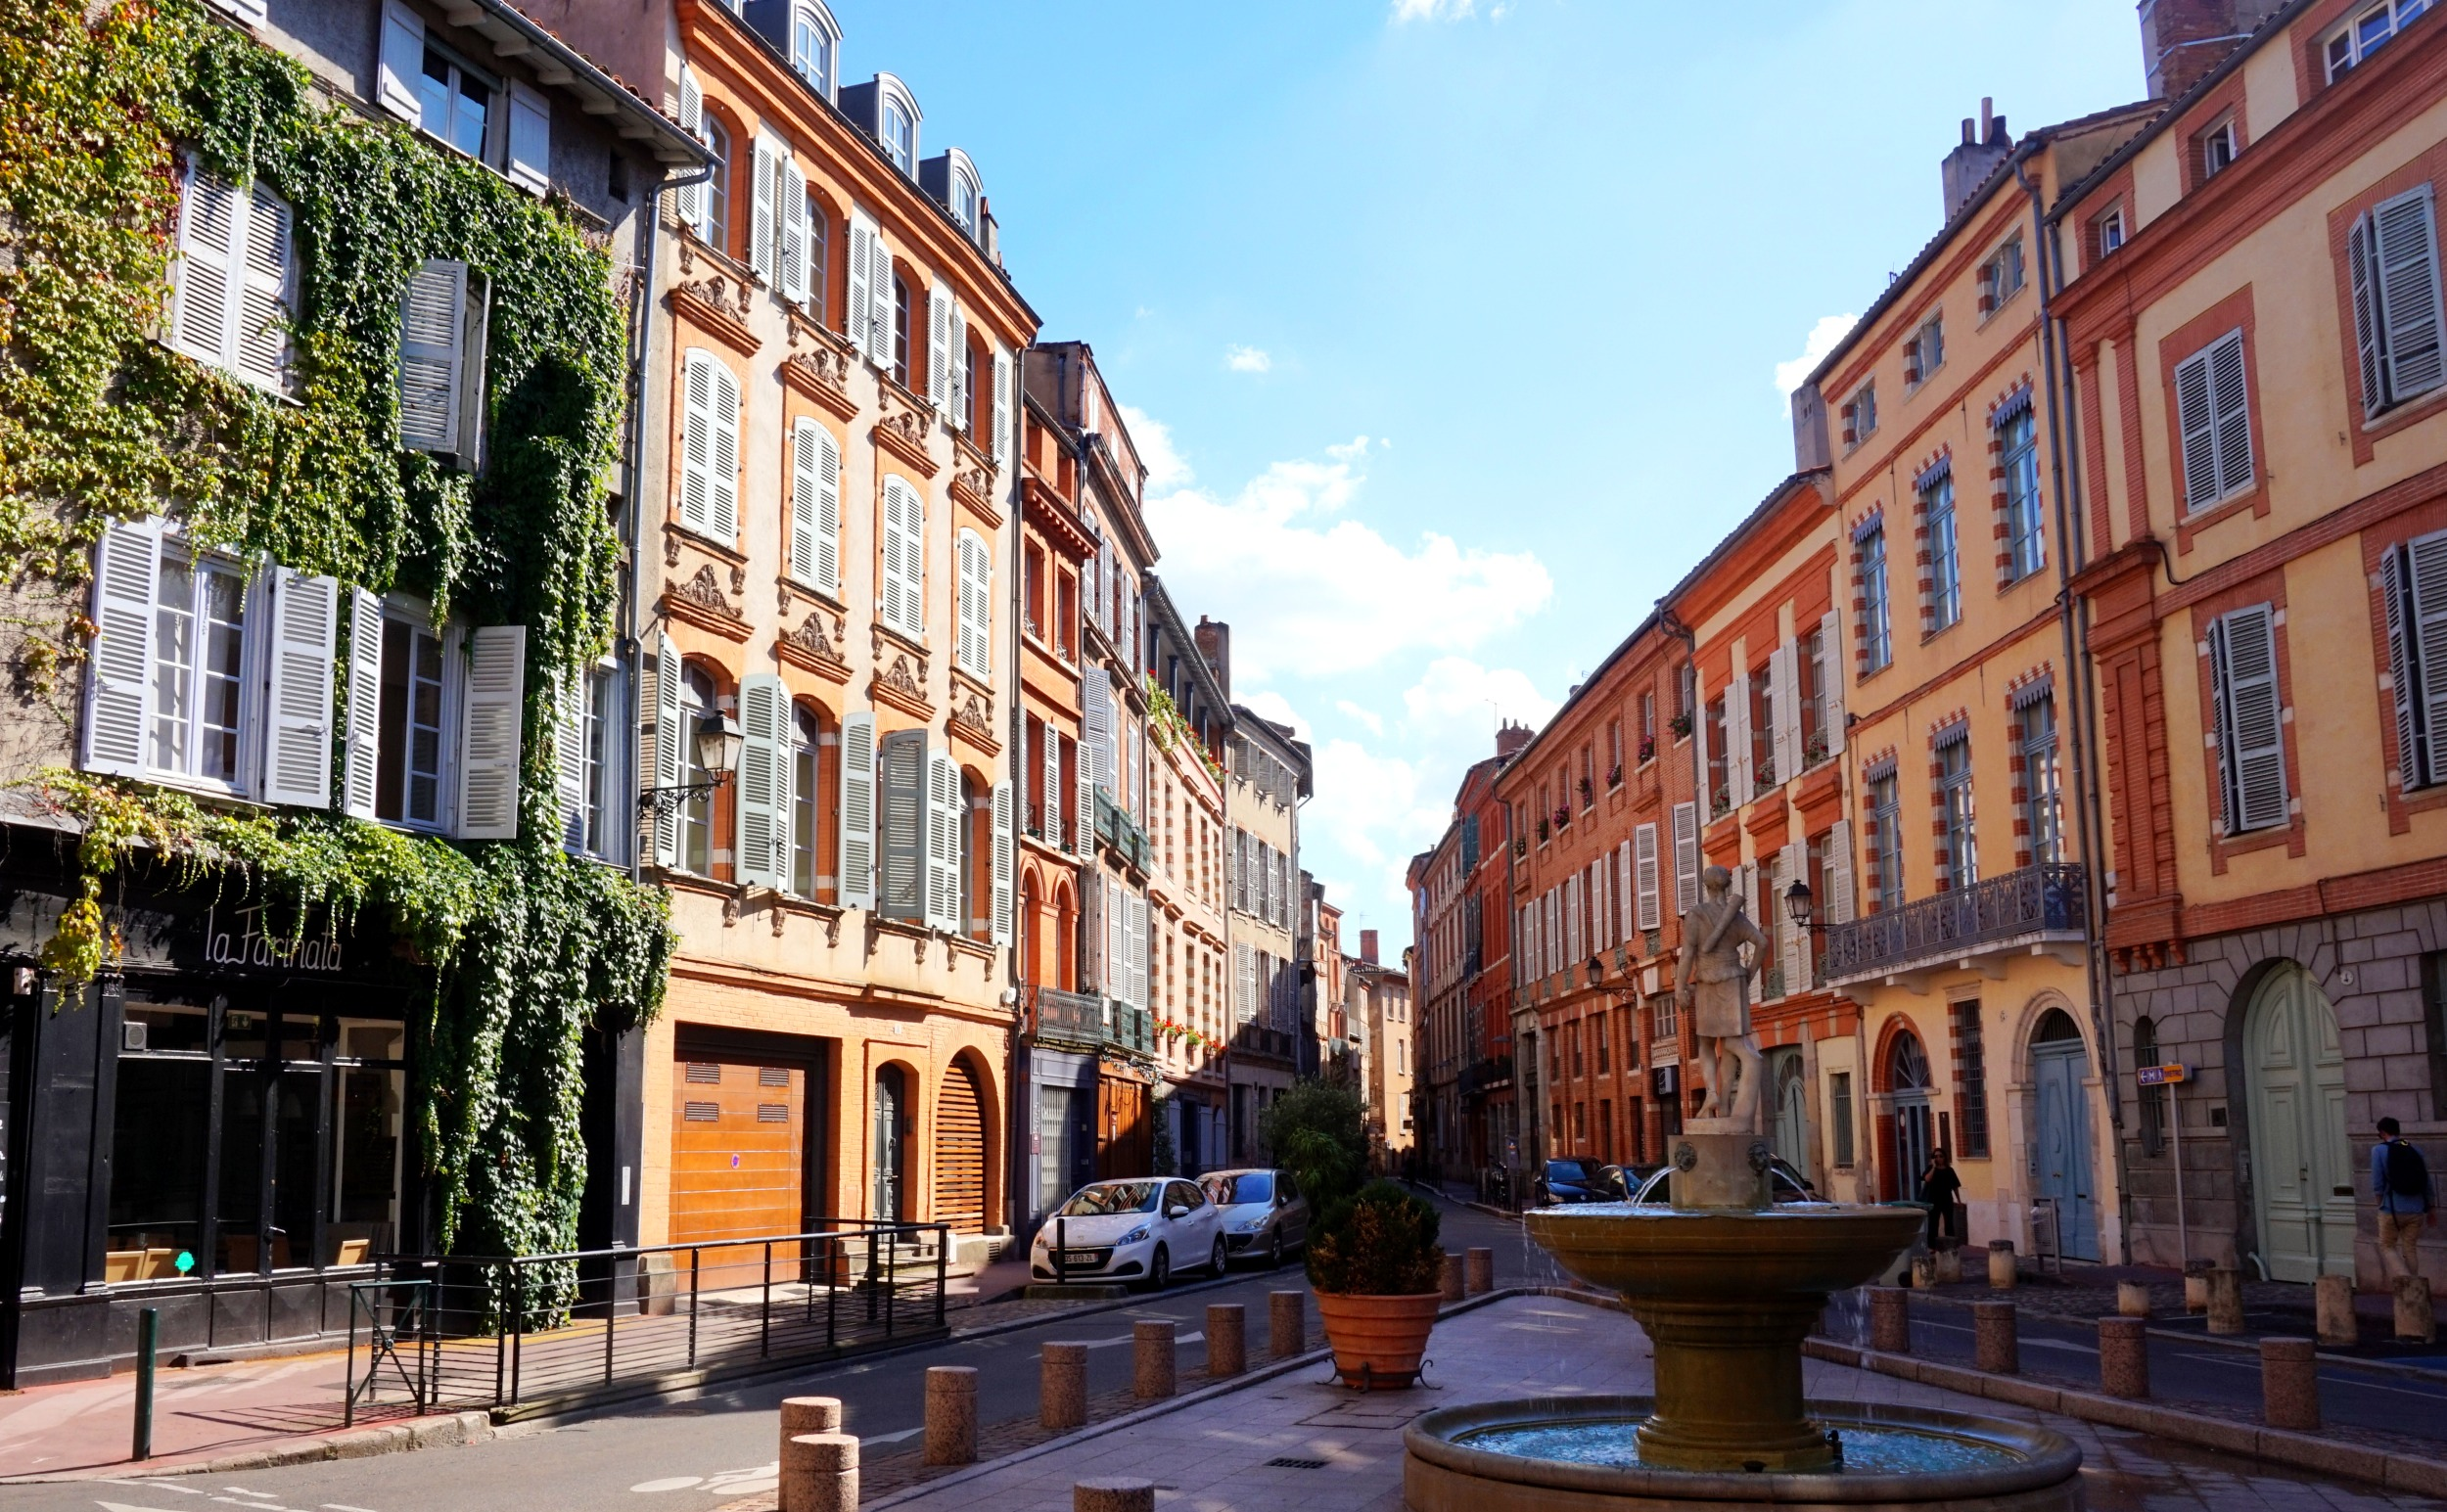 Balade-Toulouse-St-Etienne-16